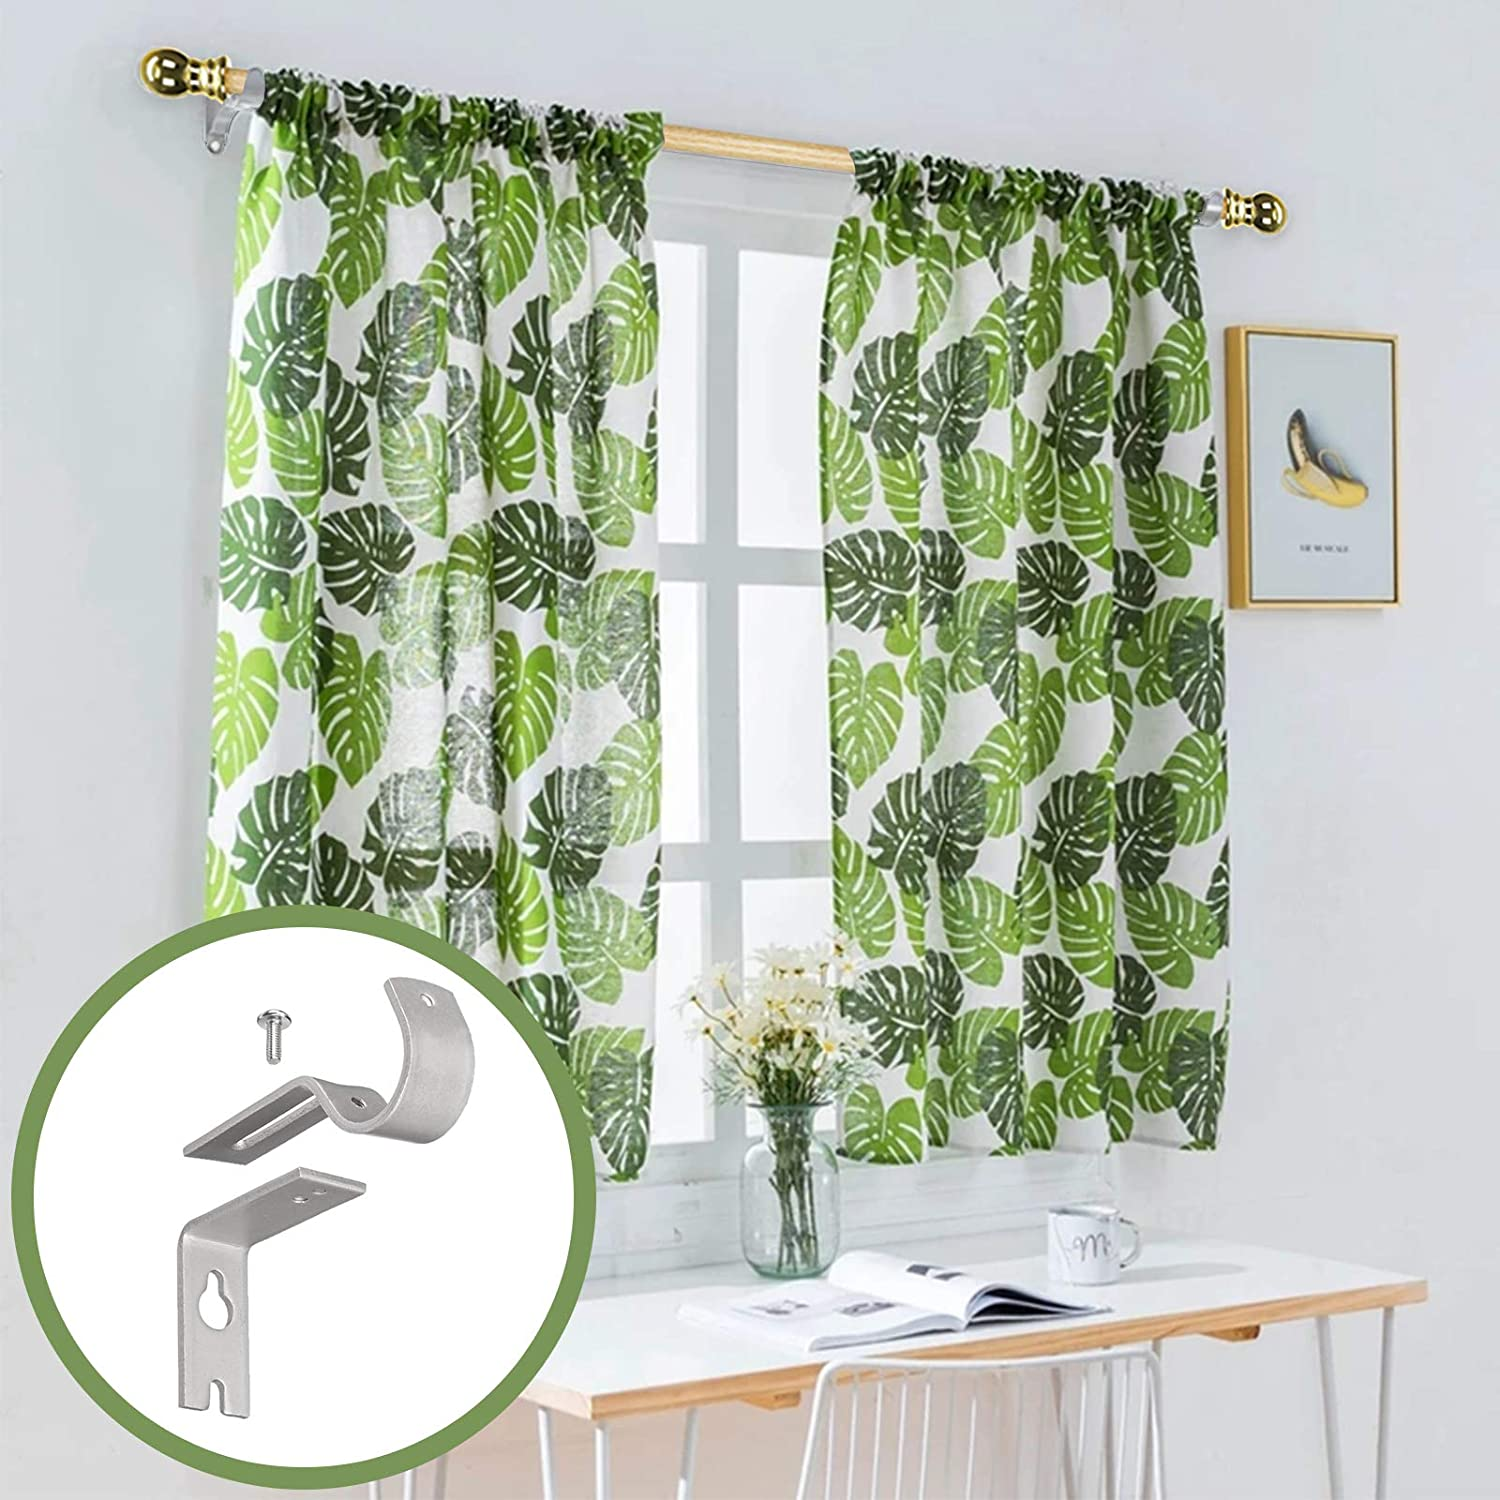 Curtain Rods for windows,Window Single Curtain Rod Set with Finials 30-48 Adjustable Curtain Rod Decorative Window Curtain Rod for Kitchen Bedroom Window Silver